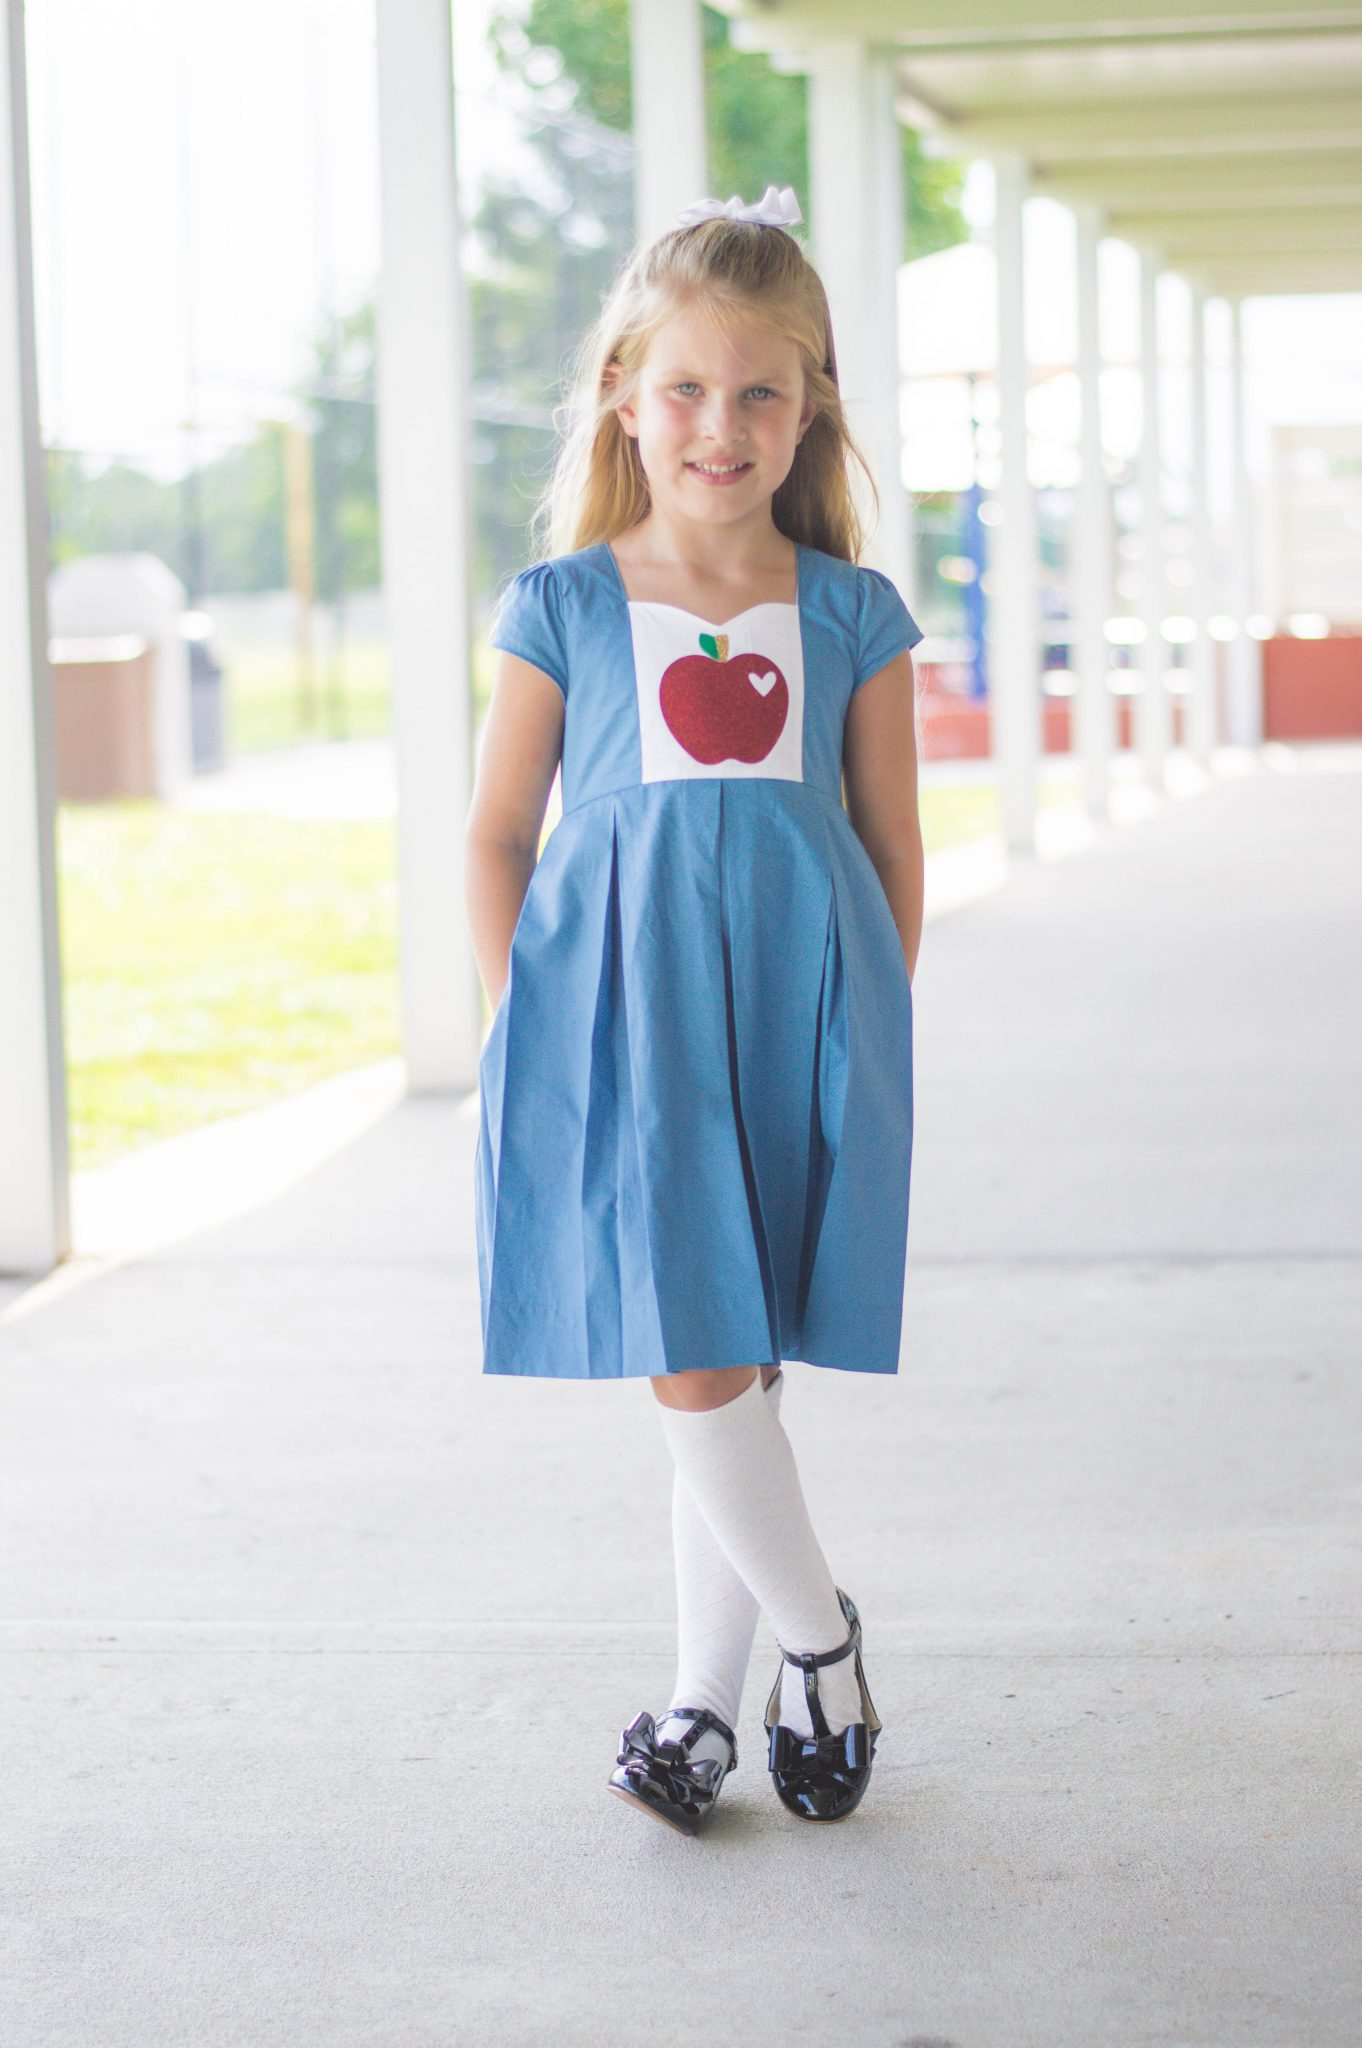 Sunflower Seams | Back to School with Silhouette, Heat Transfer Vinyl, Silhouette Cameo, Back to School, Spring, Summer, Fall, Winter, DIY, Cricut